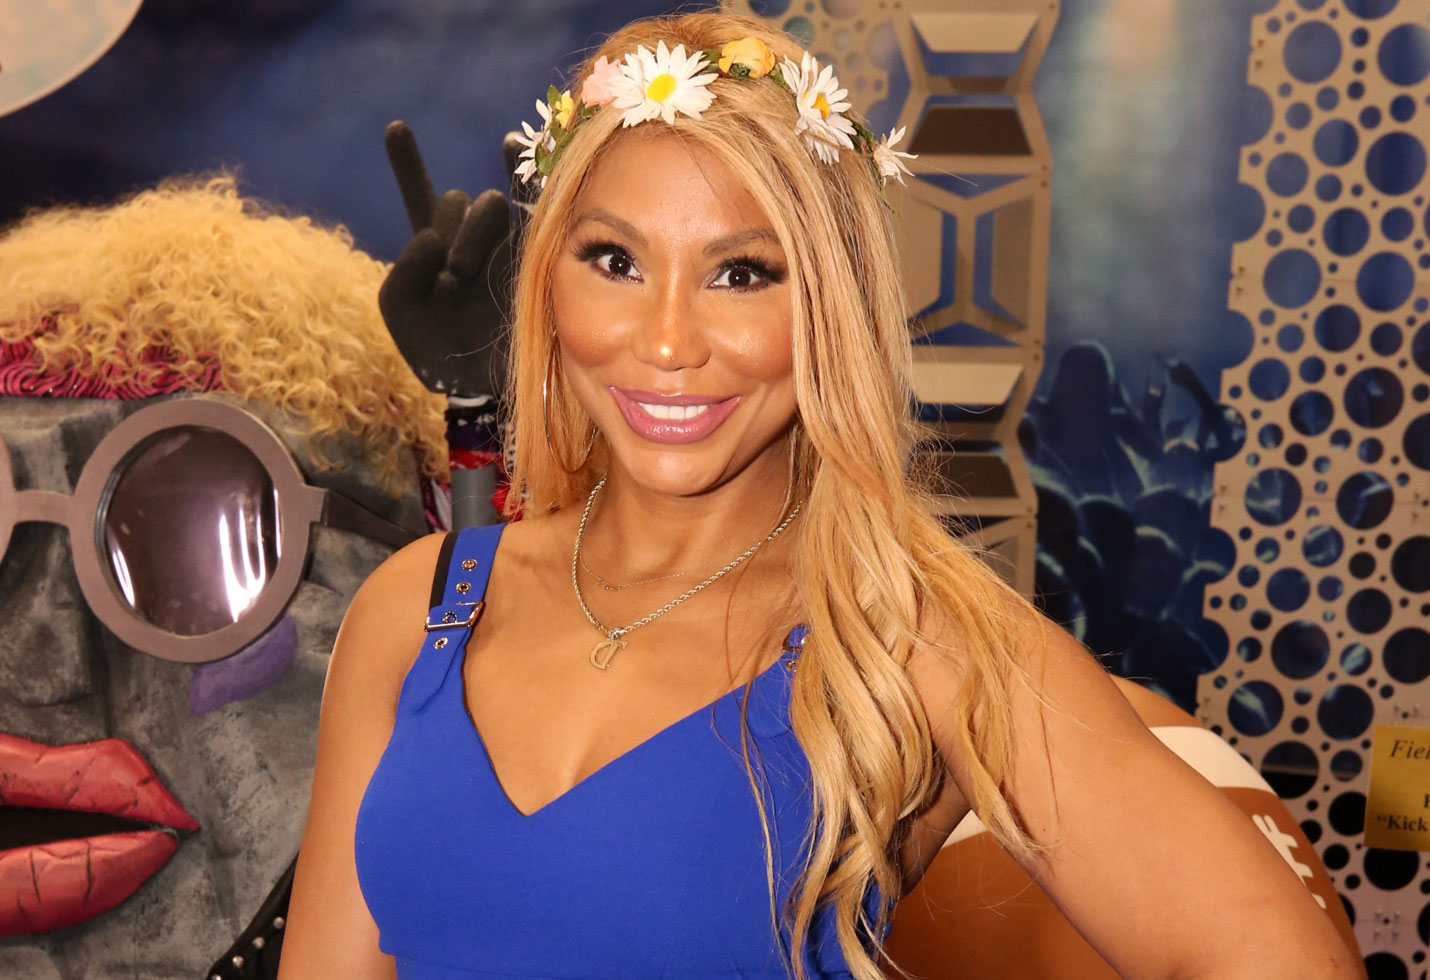 tamar-braxton-remembers-the-good-times-she-used-to-have-with-her-family-on-their-show-see-tamar-singing-at-her-moms-dogs-funeral